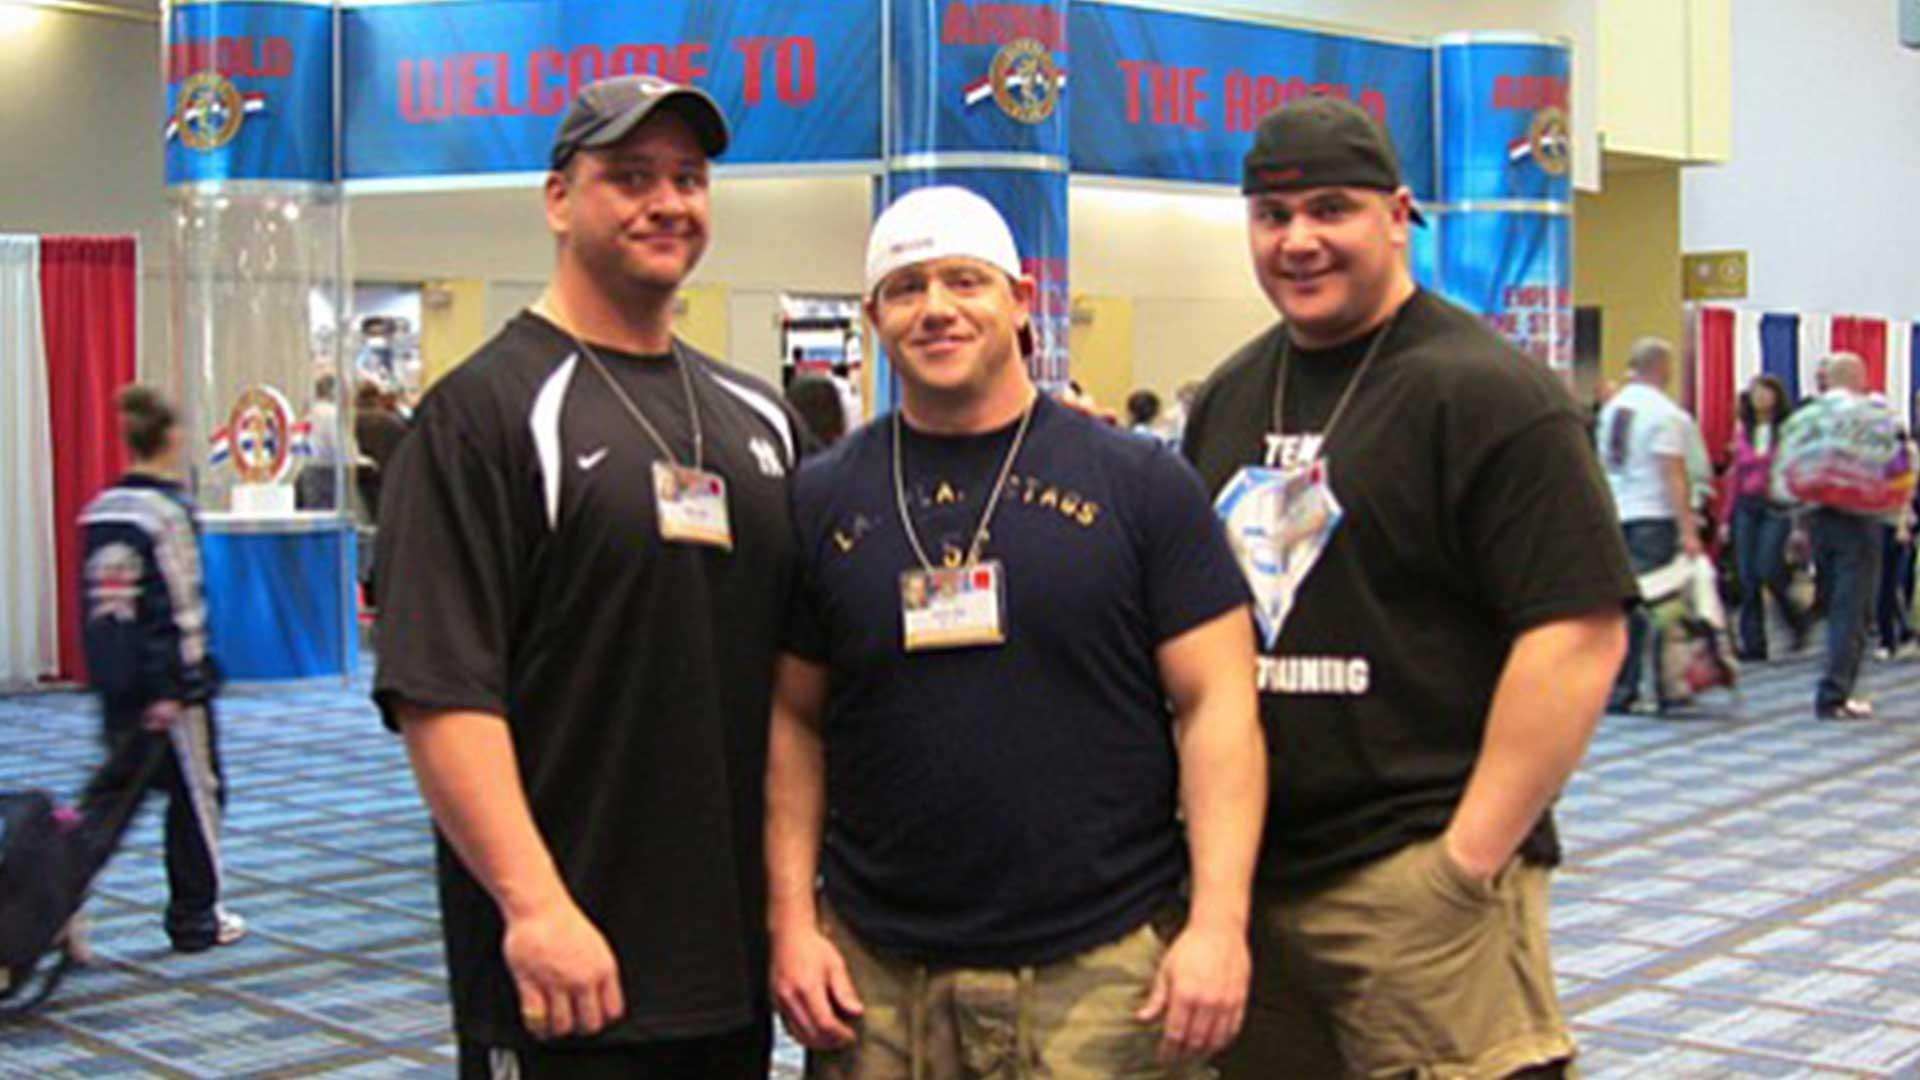 MARK BELL AND HIS BROTHERS